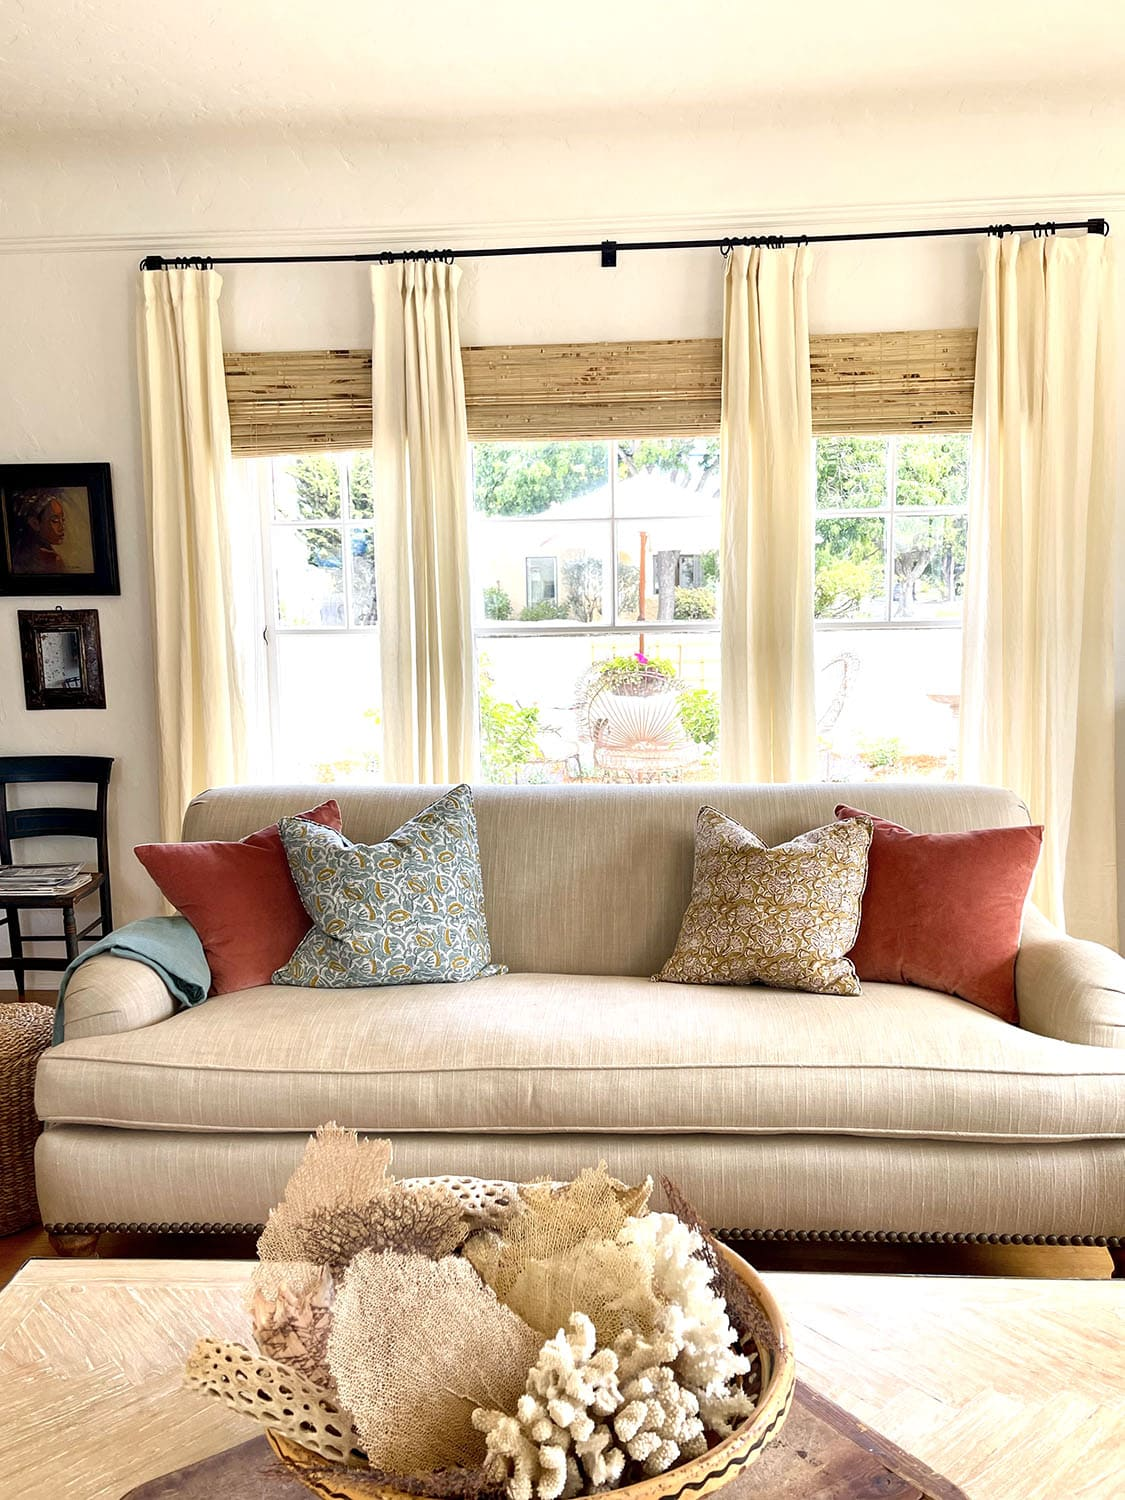 cindy hattersley's living room looking out onto courtyard